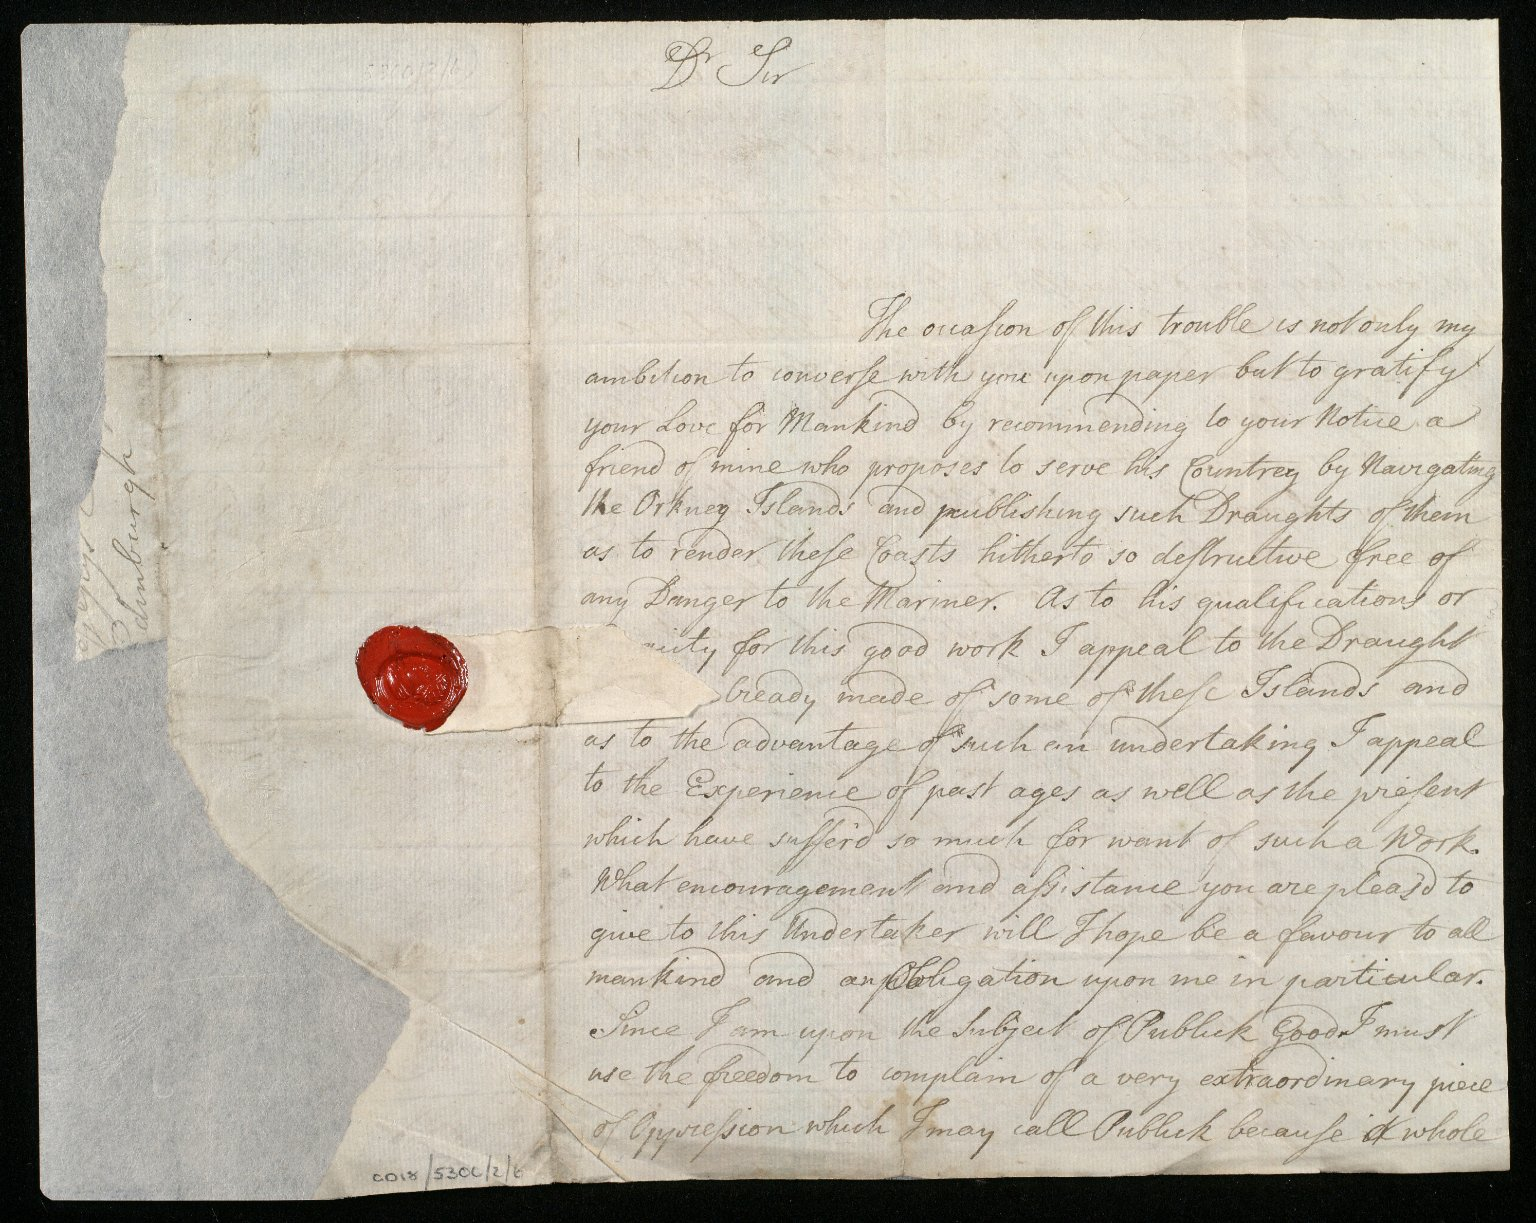 [Letter from Alexander Mackenzie to Sir John Clerk of Penicuik, recommending the proposal of a friend to survey the coasts of Orkney] [1 of 2]